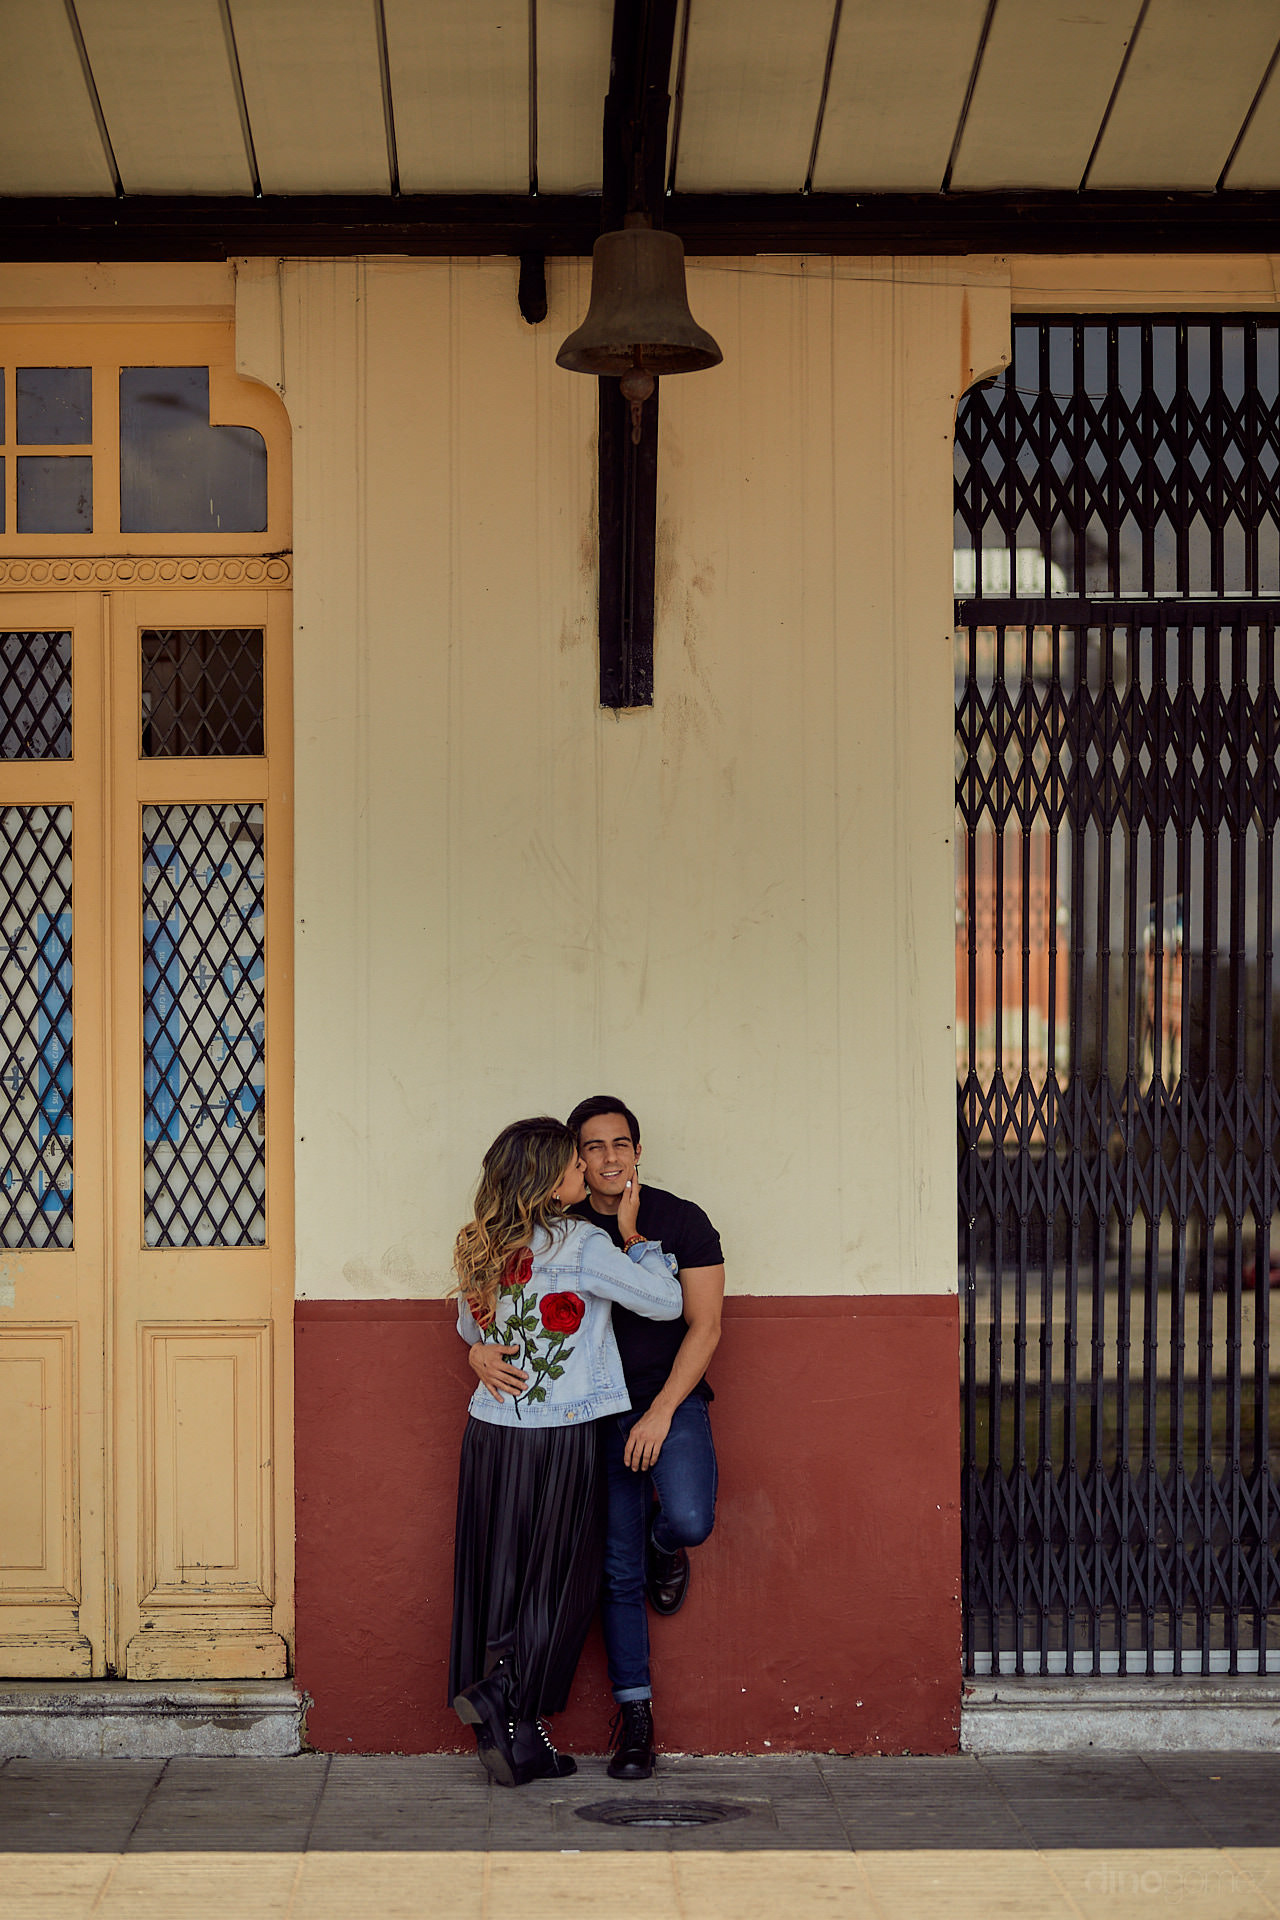 Hire The Best Photographer In San Miguel De Allende, Mexico And Let Me Tell Your Unique Travel Story In Images